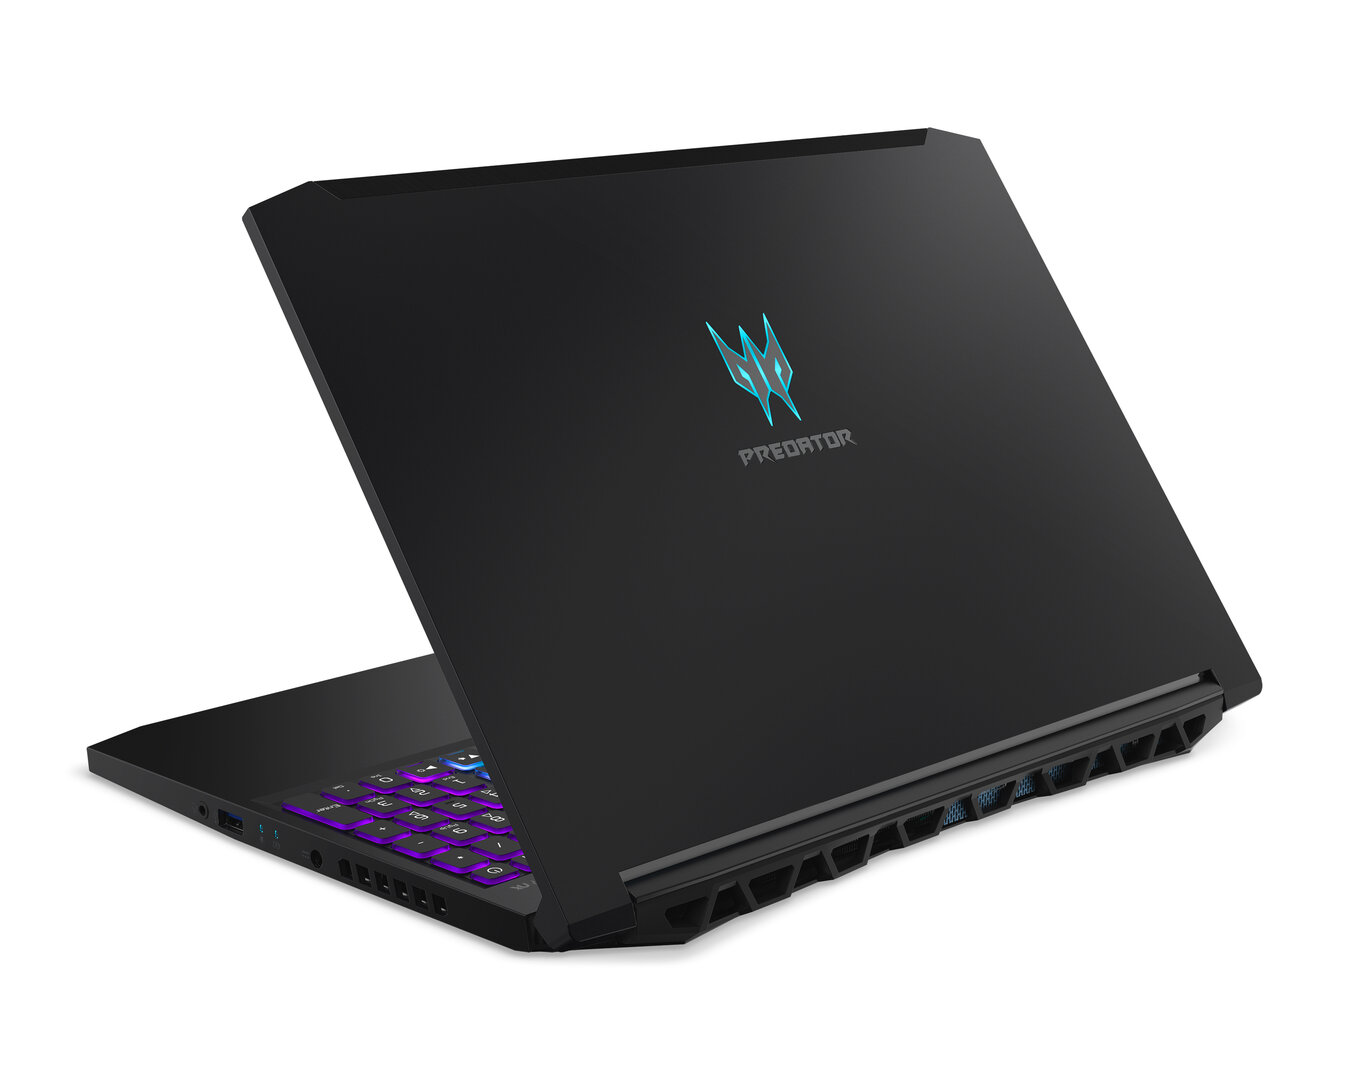 Acer Predator Triton 300 (Early 2020)